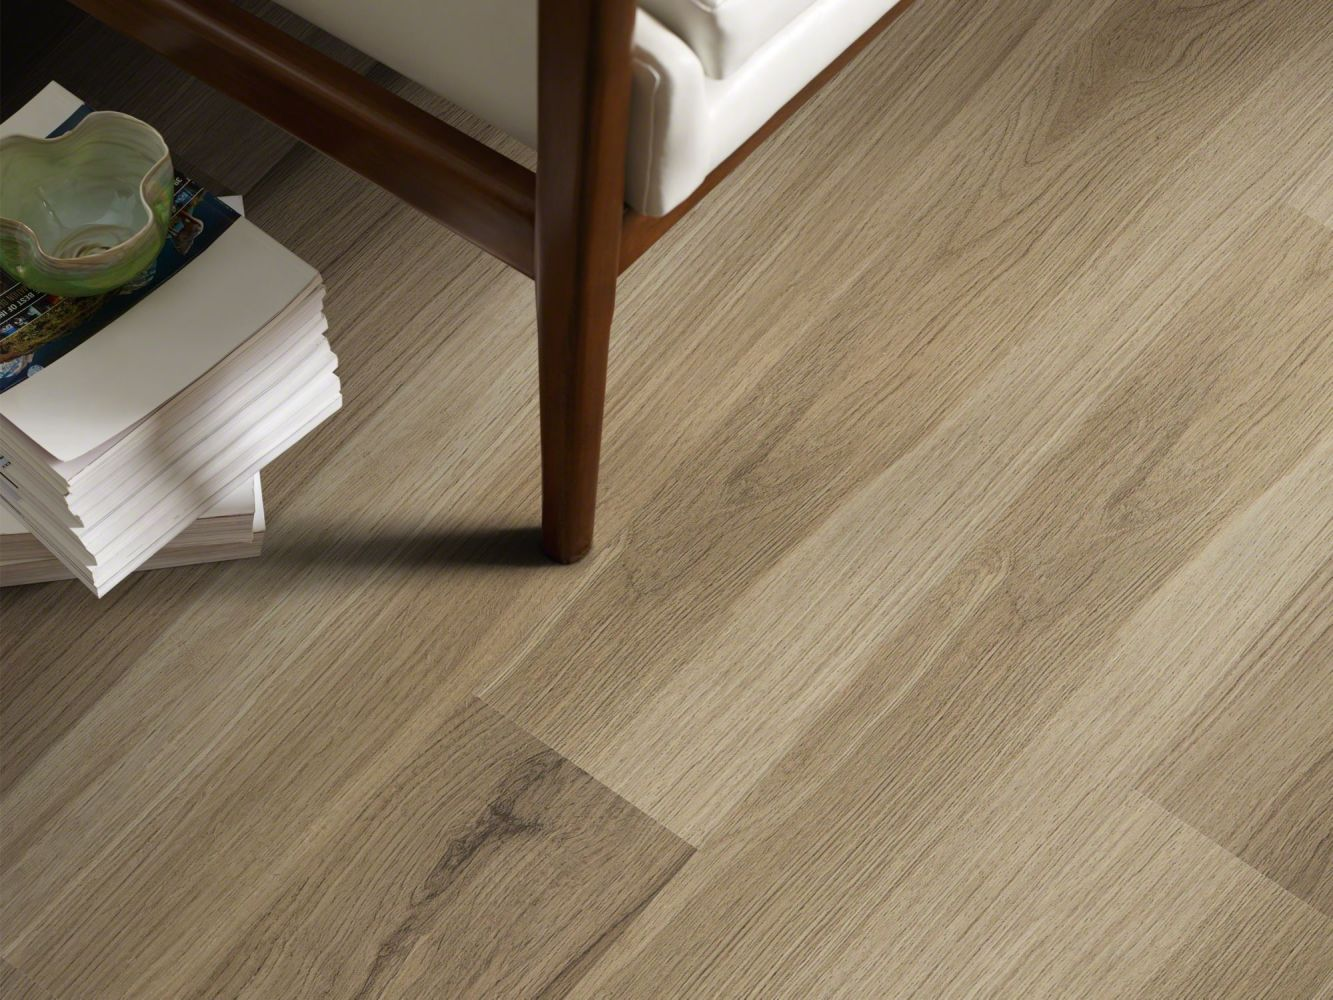 Shaw Floors Resilient Residential Endura 512g Plus Almond Oak 00154_0802V